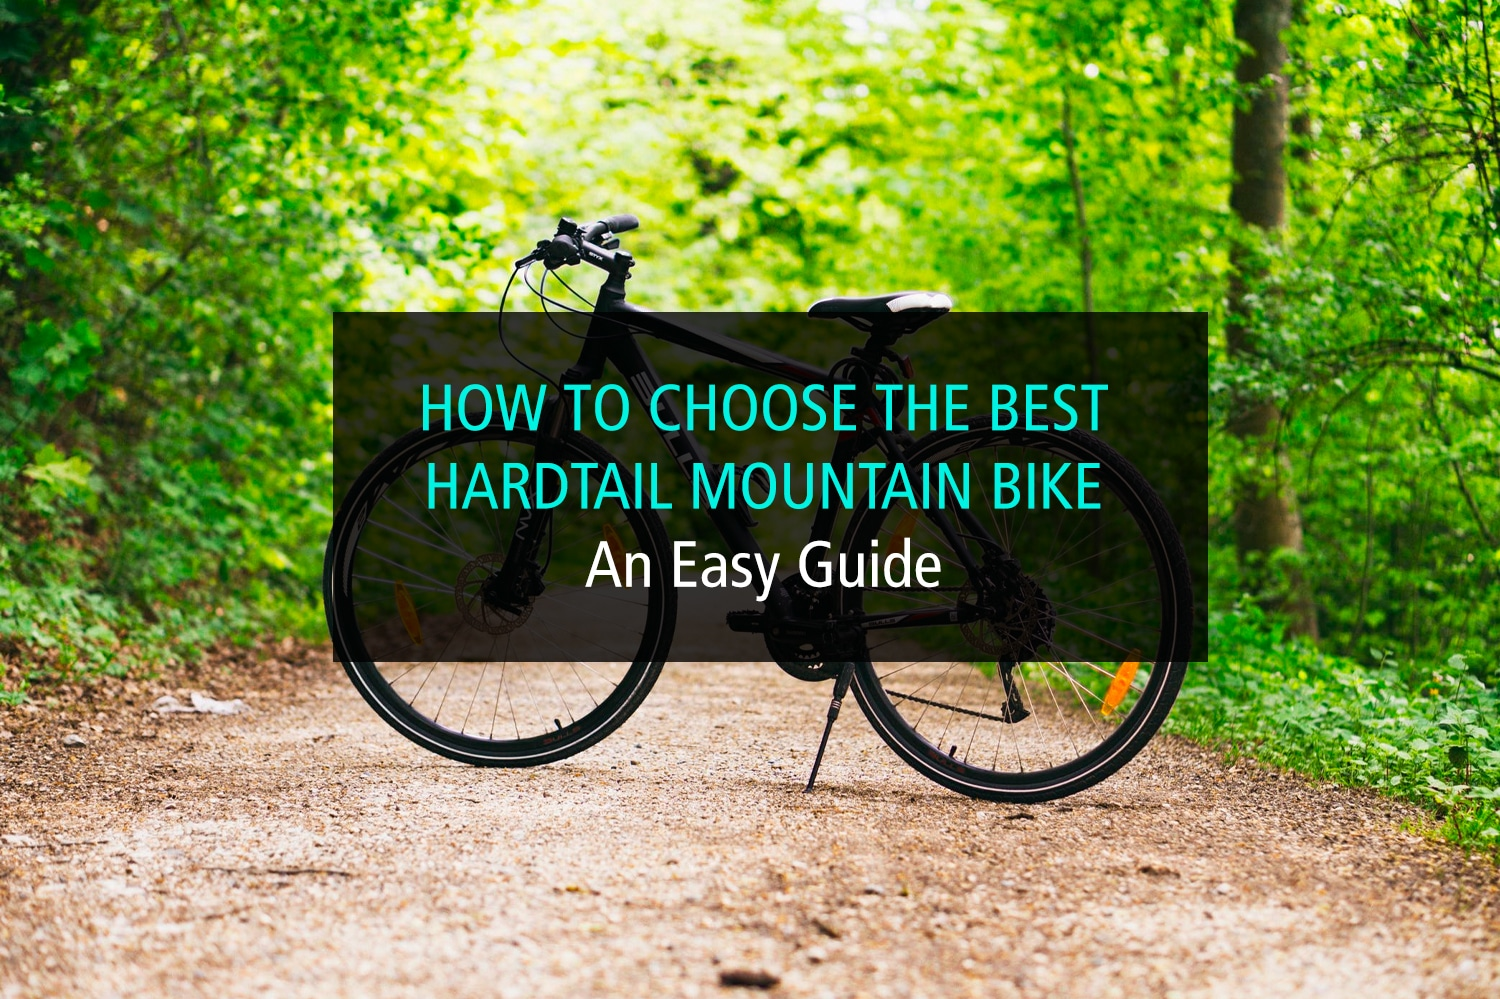 How to choose the best hardtail mountainbike